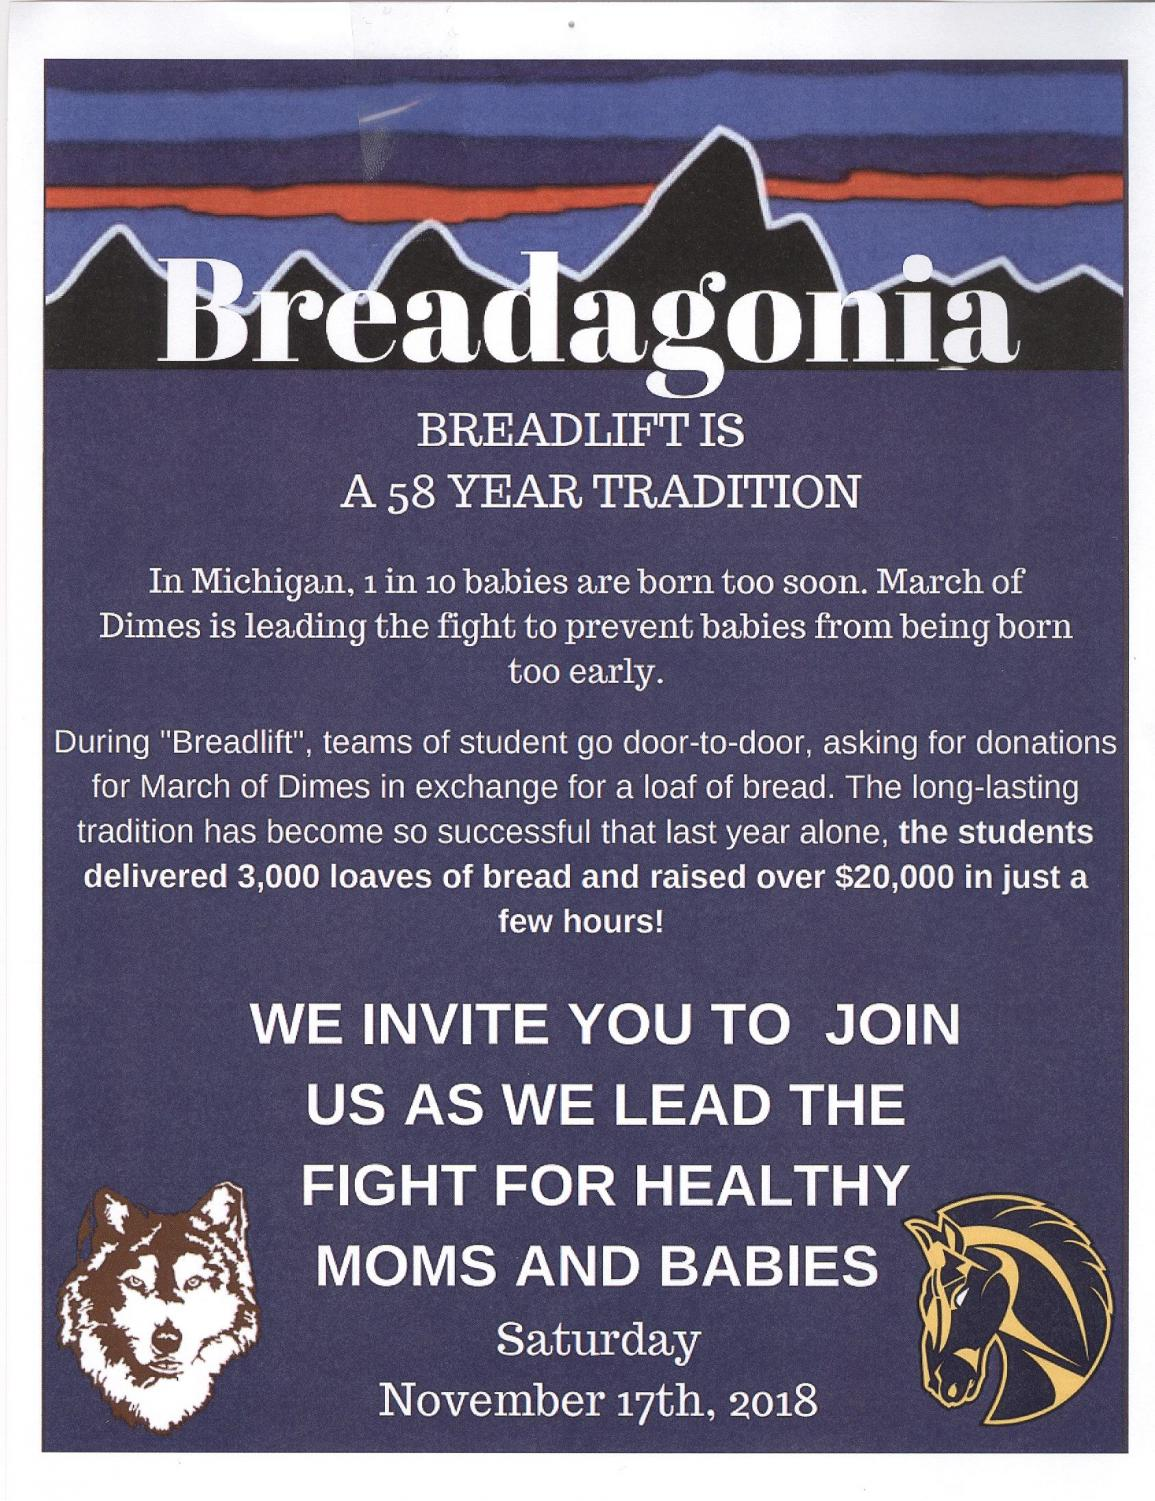 Join in on a fun volunteering activity this weekend to get involved in the community and save premature babies.